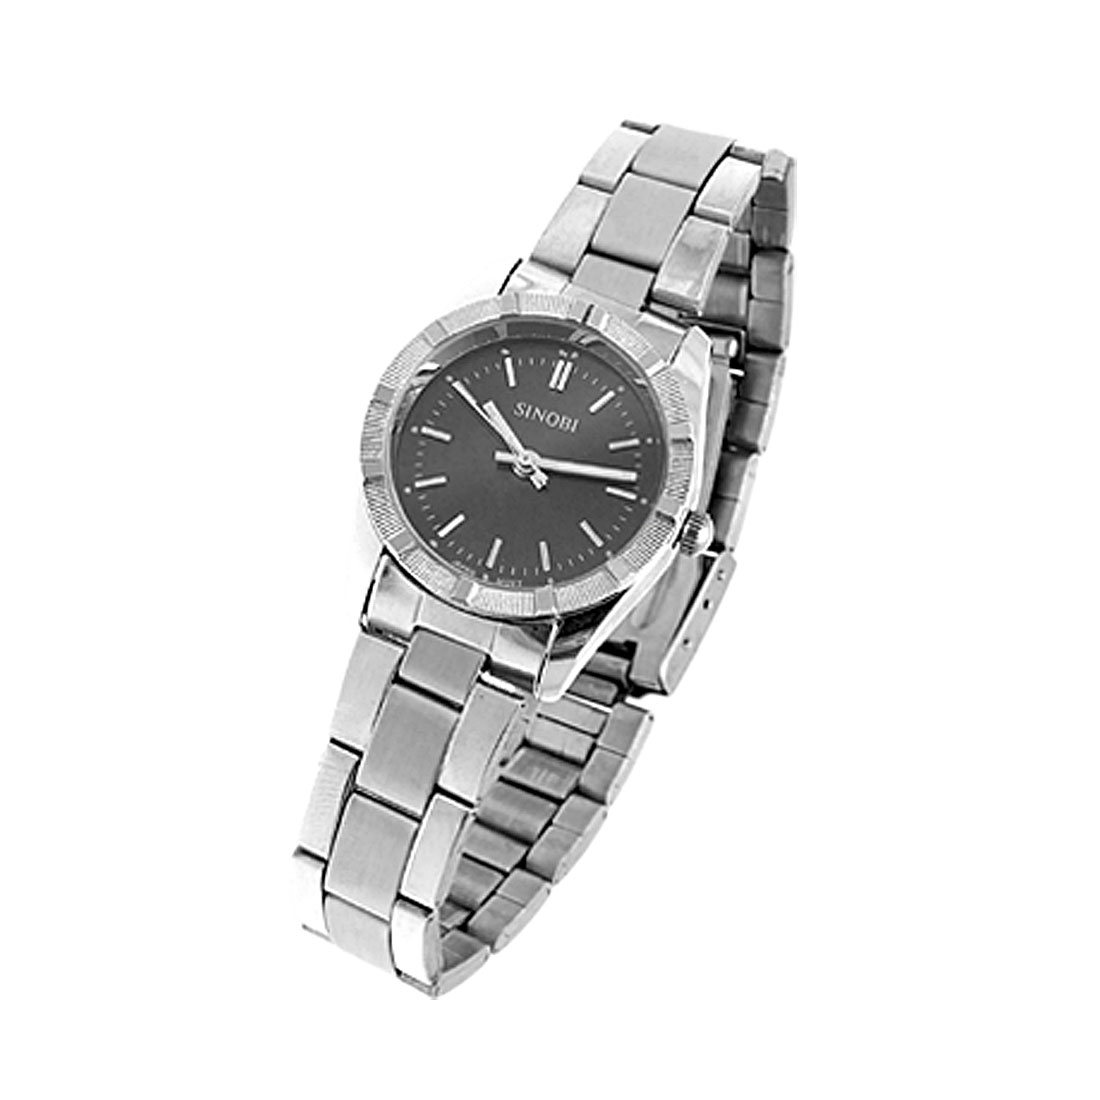 Fashion Jewelry Round Black Dial Watchcase Metal Band Lady's Watch